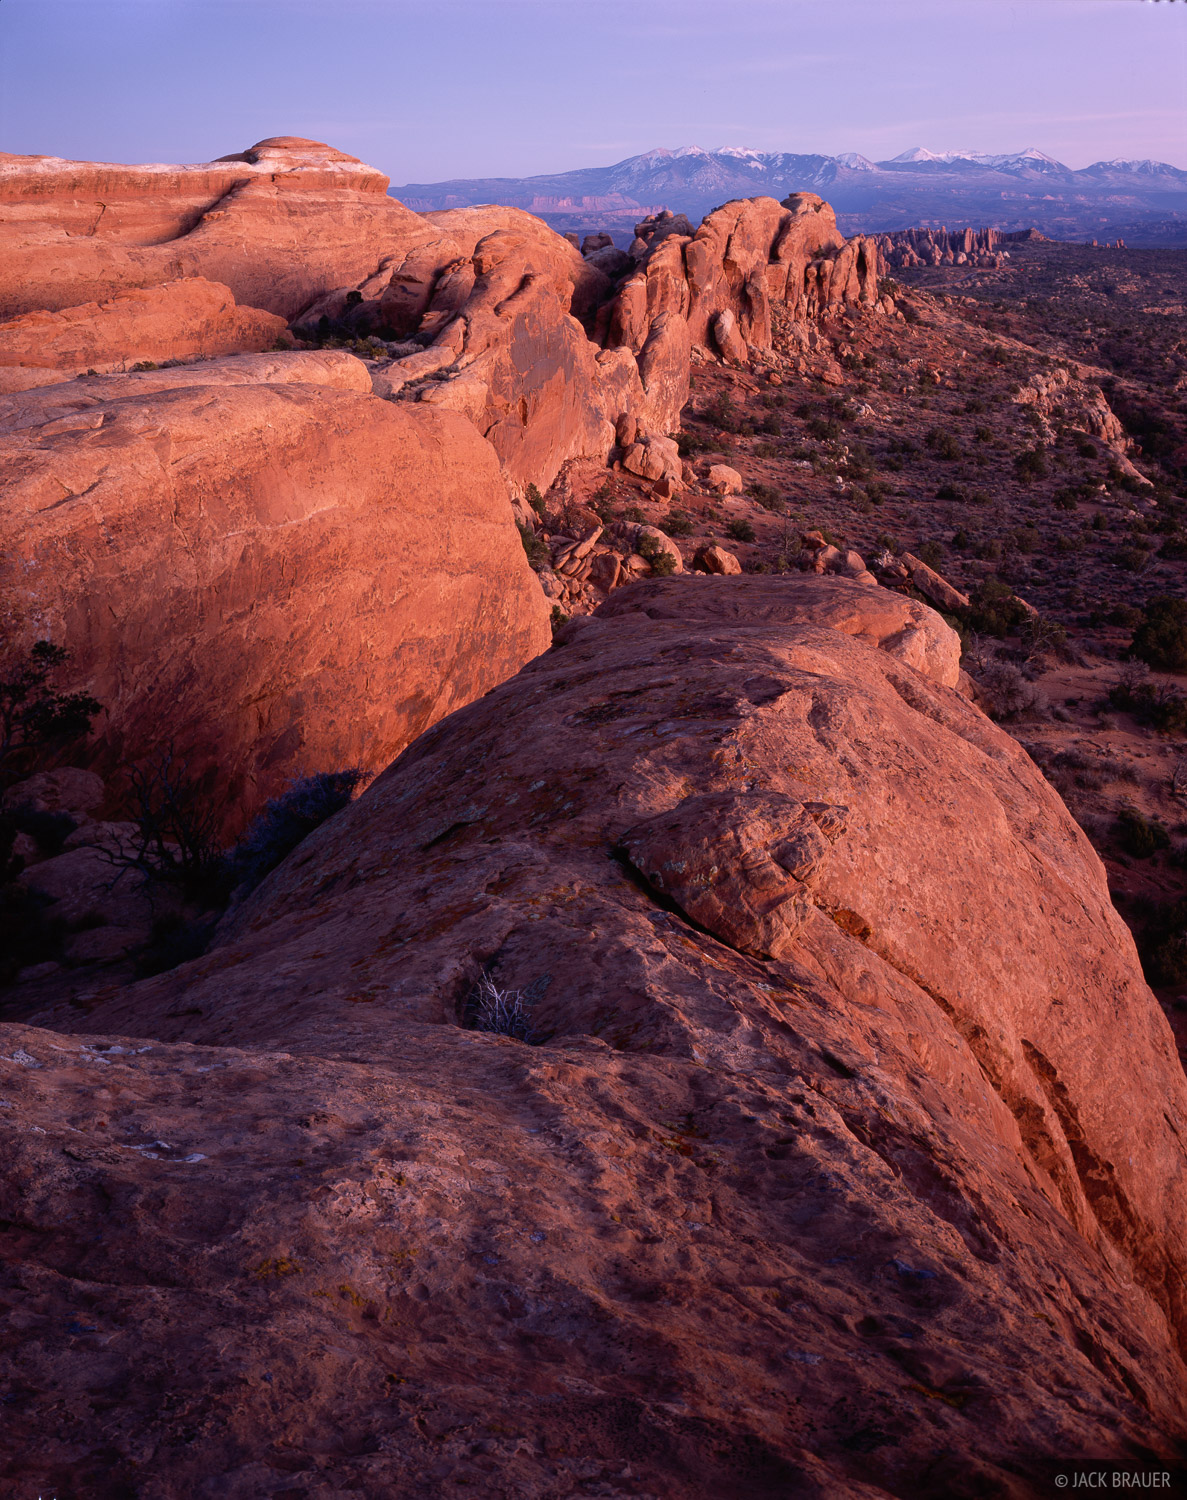 Arches National Park, La Sal Mountains, Moab, Utah, photo